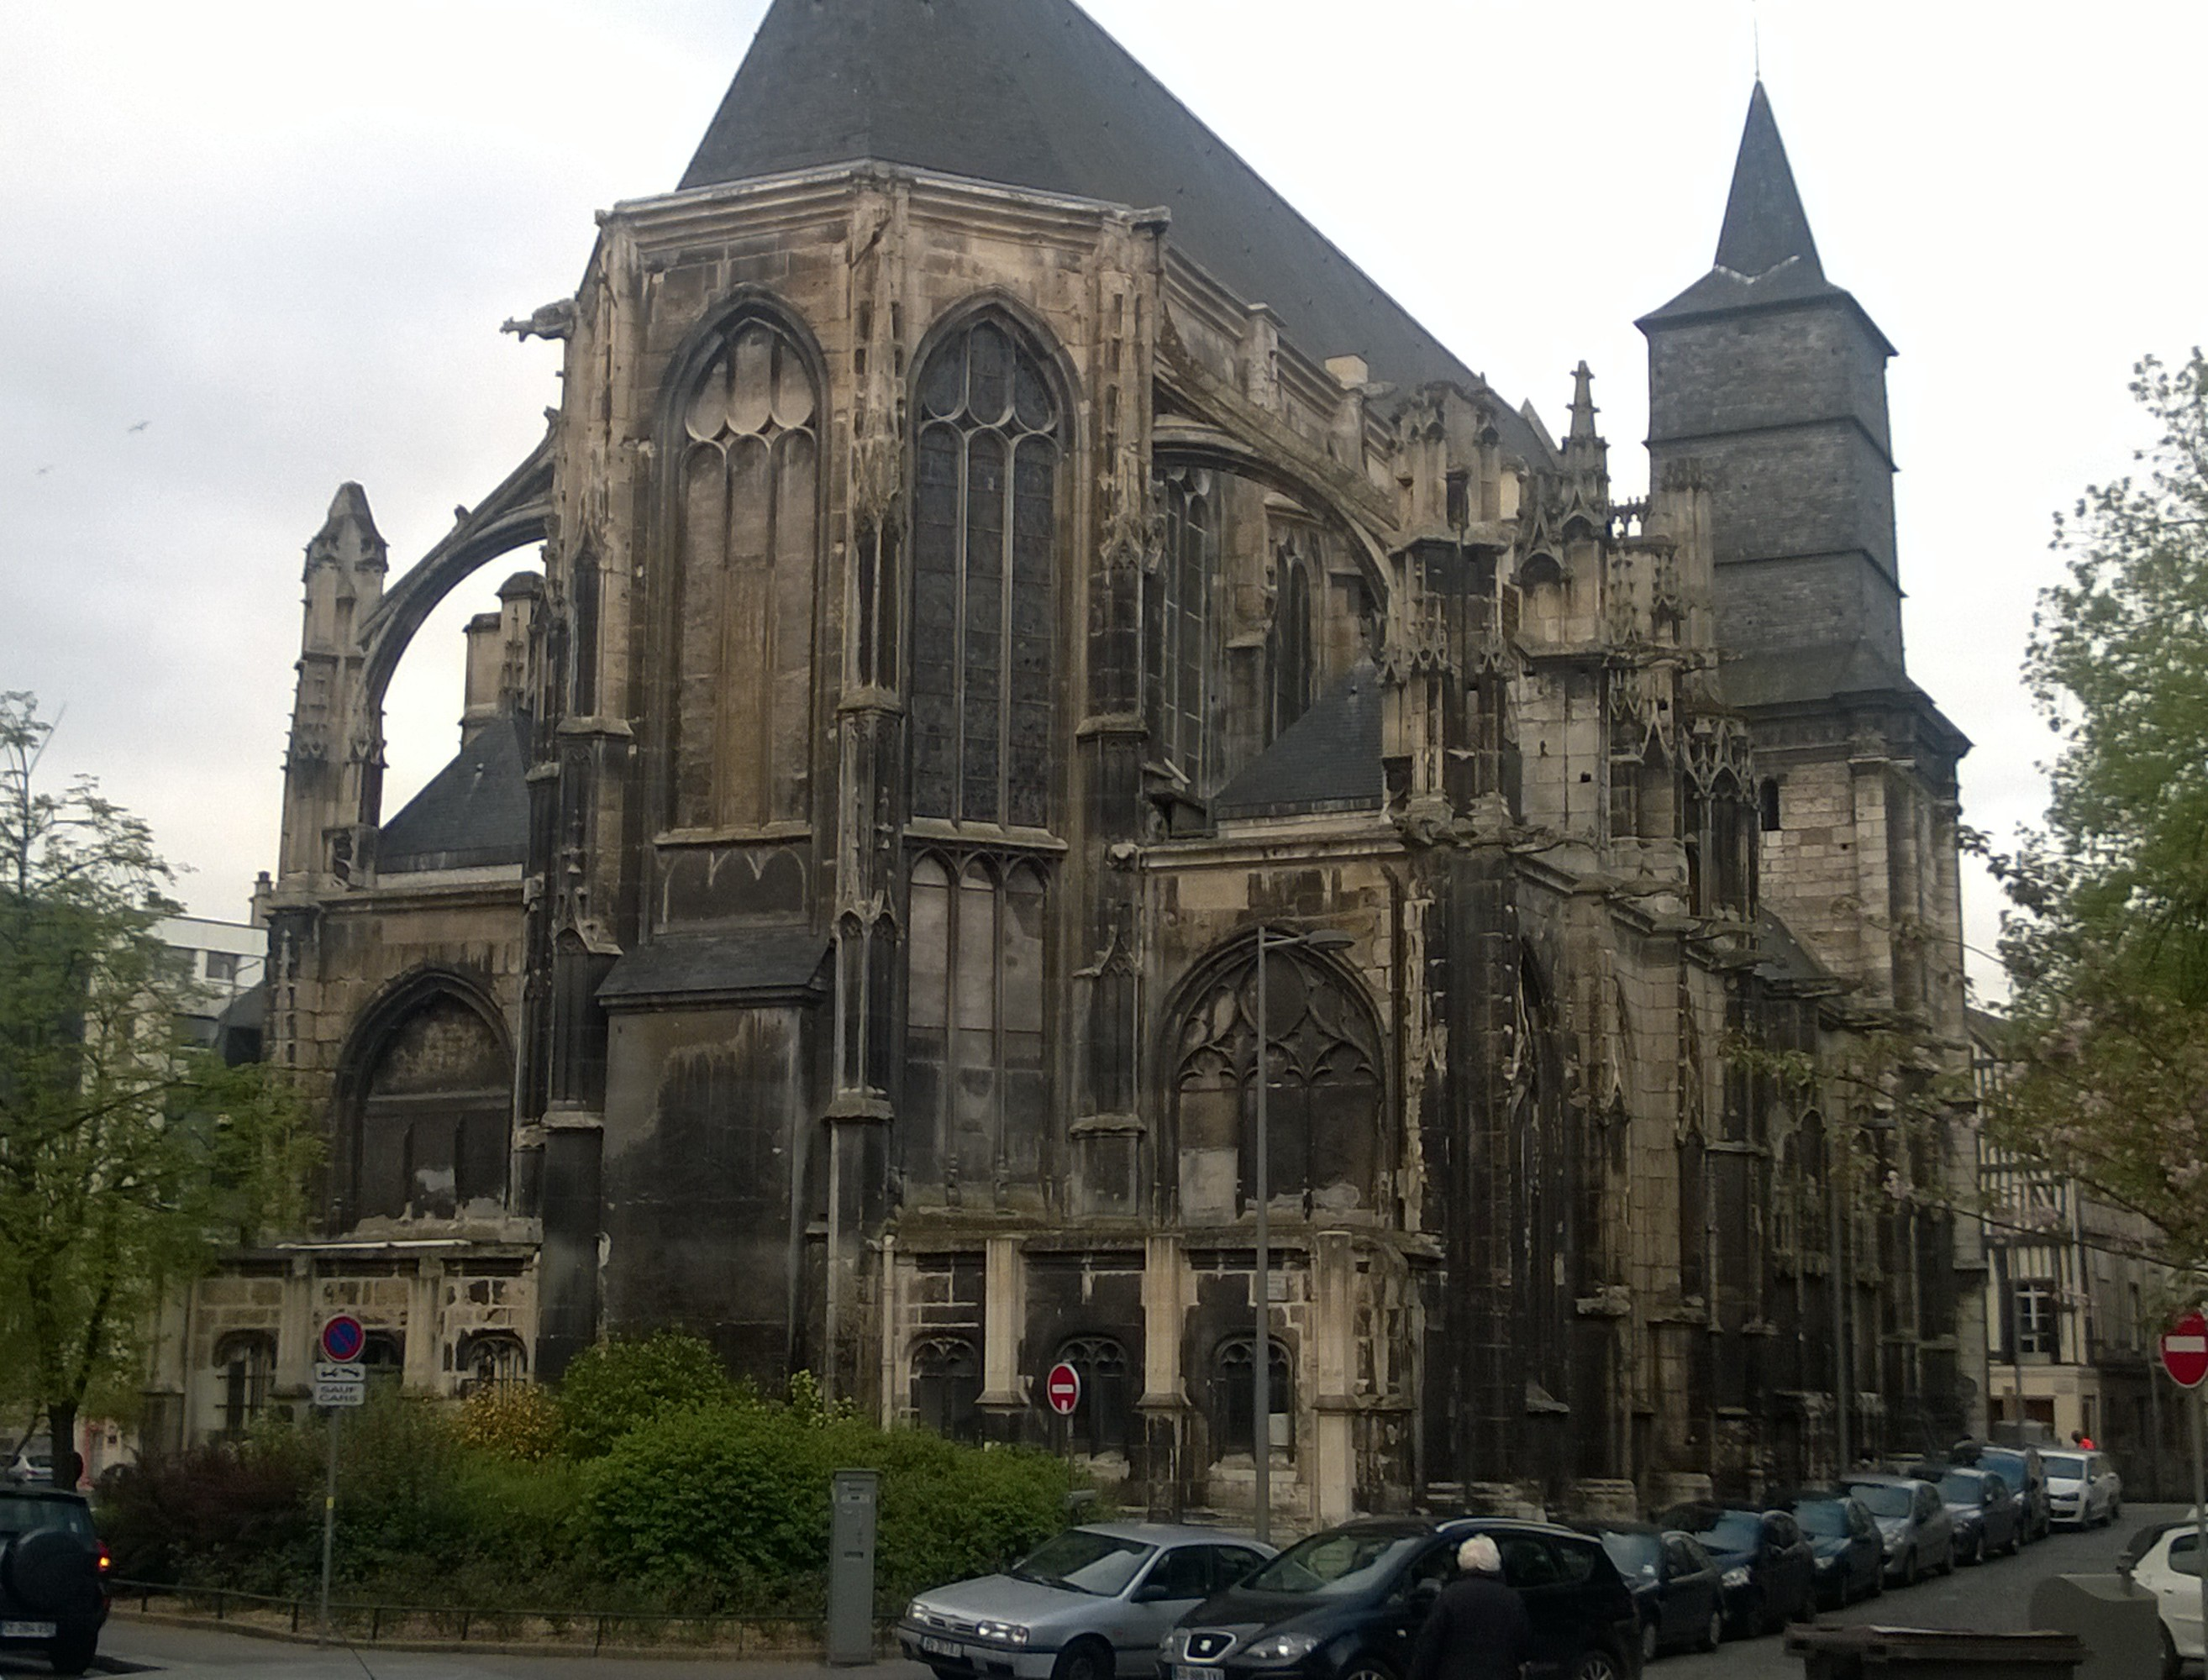 Church of Saint Maclou - 20 Must See Sites in Northern France